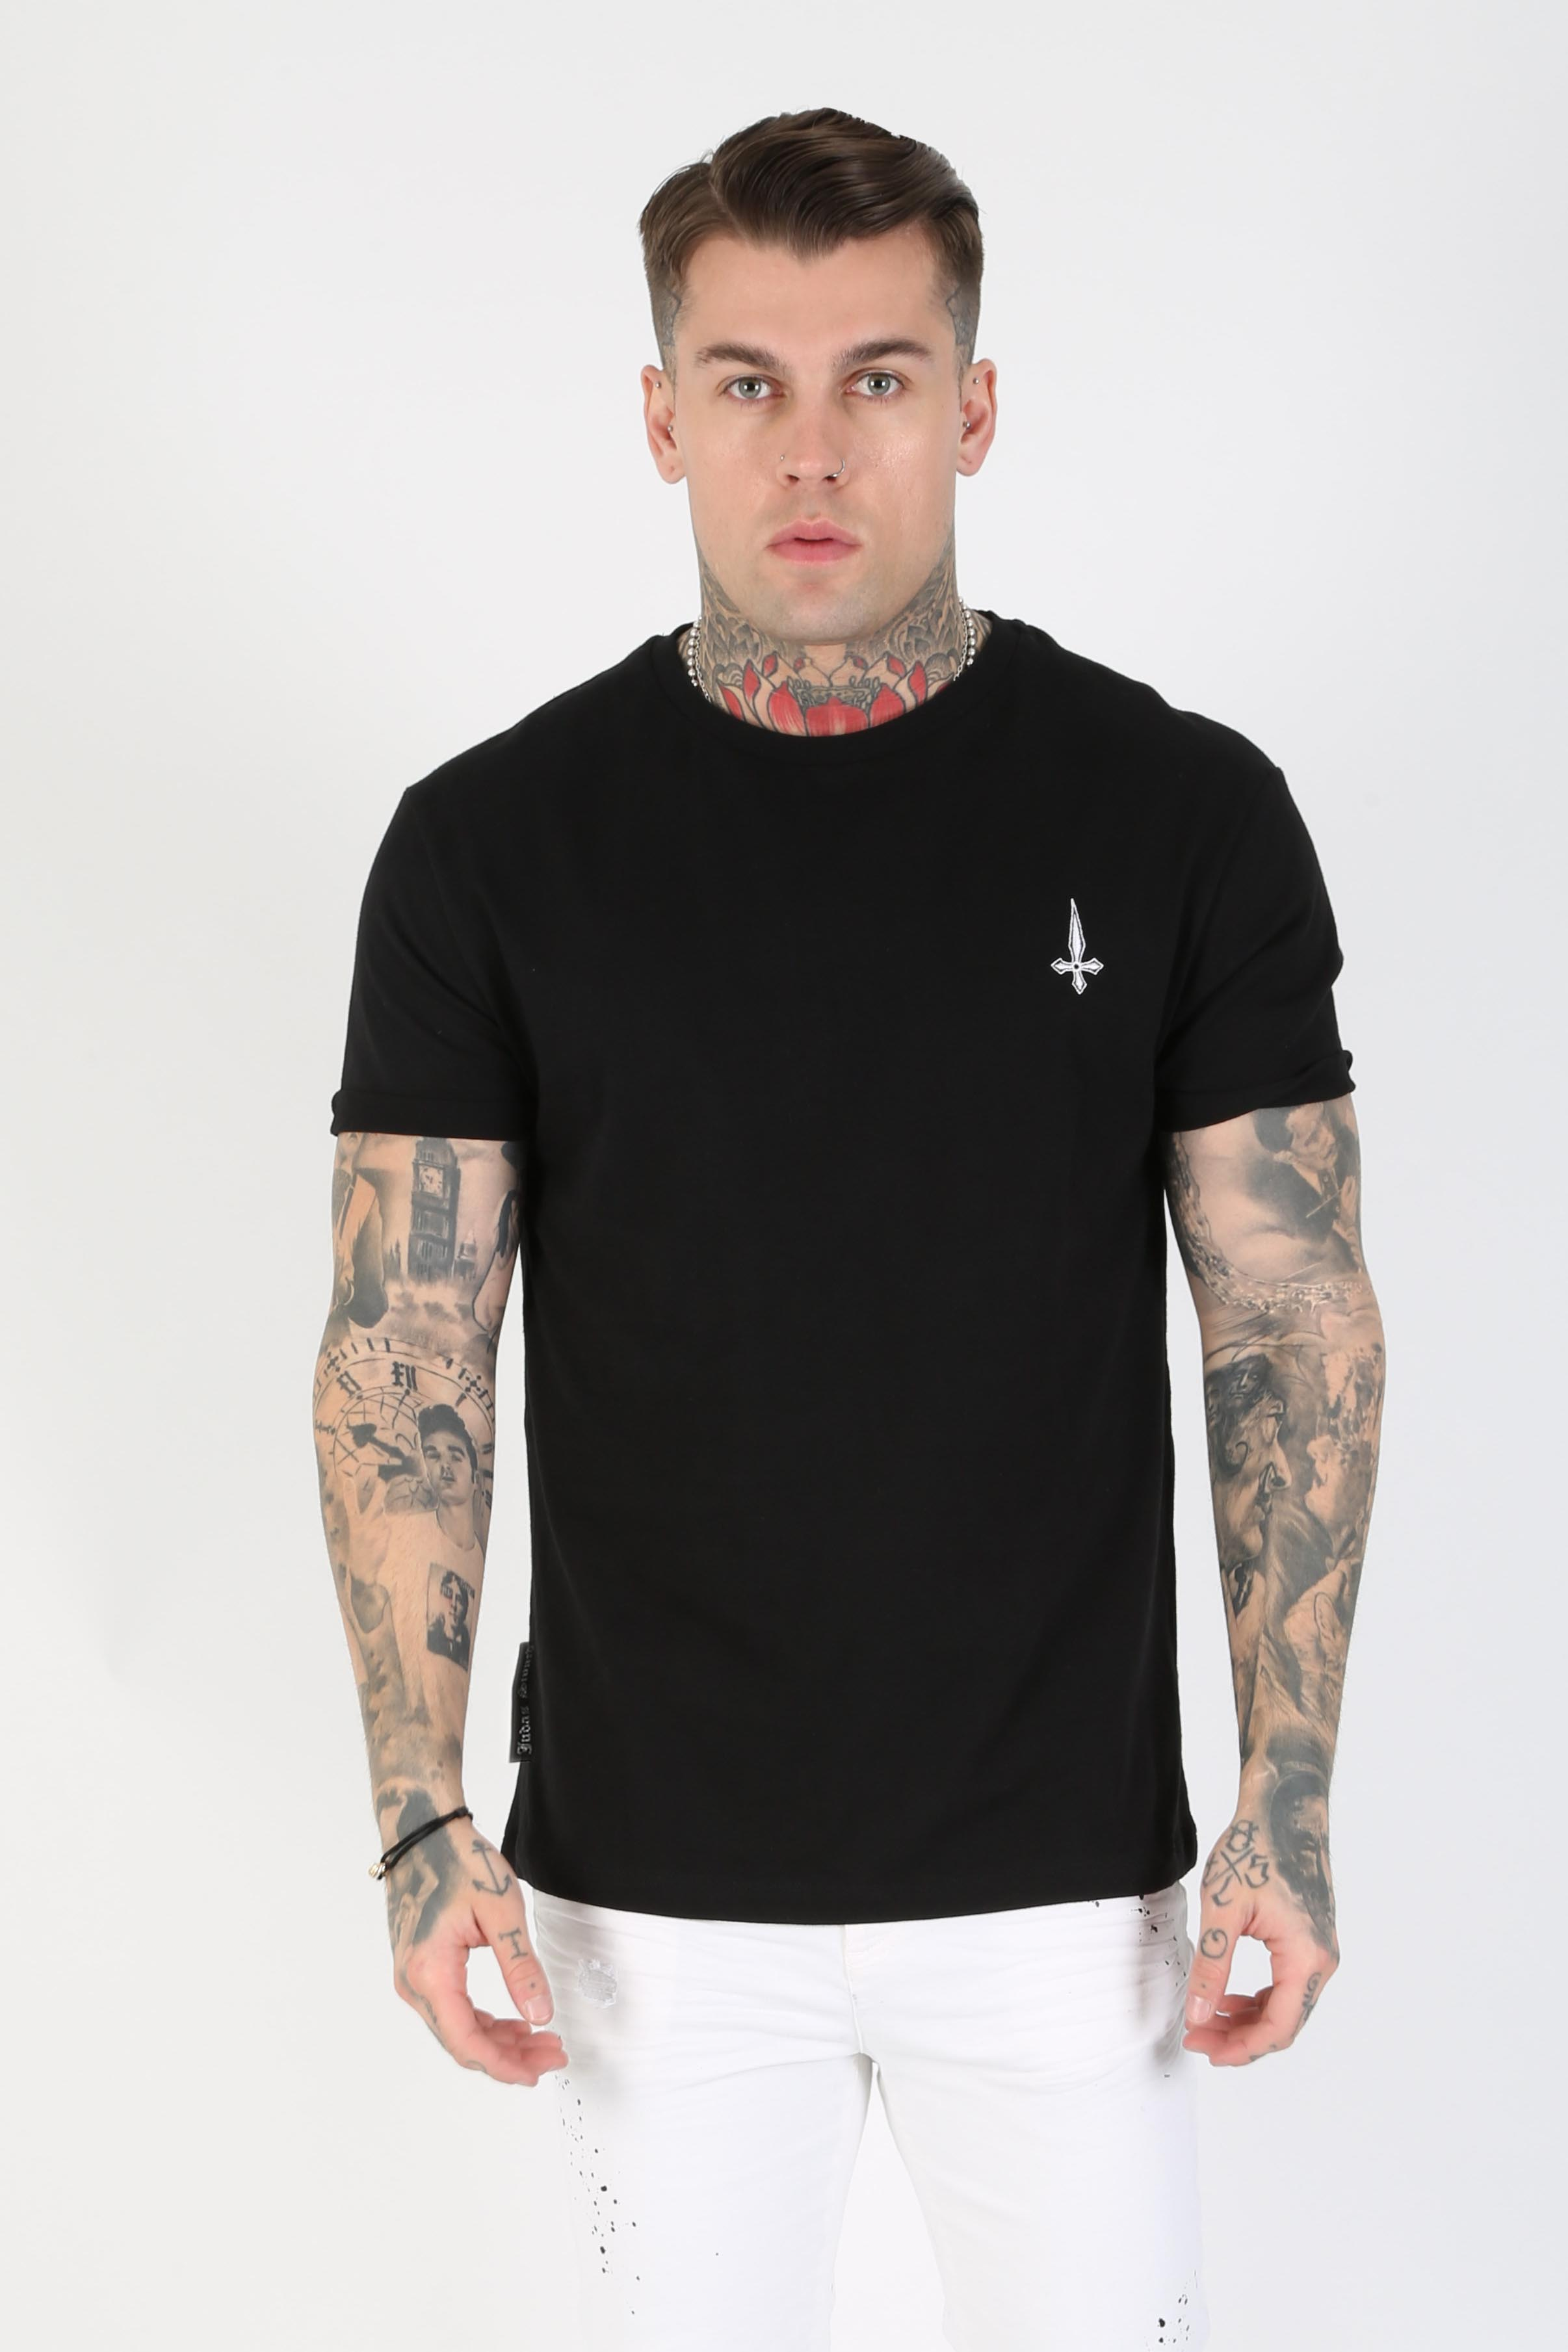 Mid Embroidery Loose Fit Men's T-Shirt - Black, Large